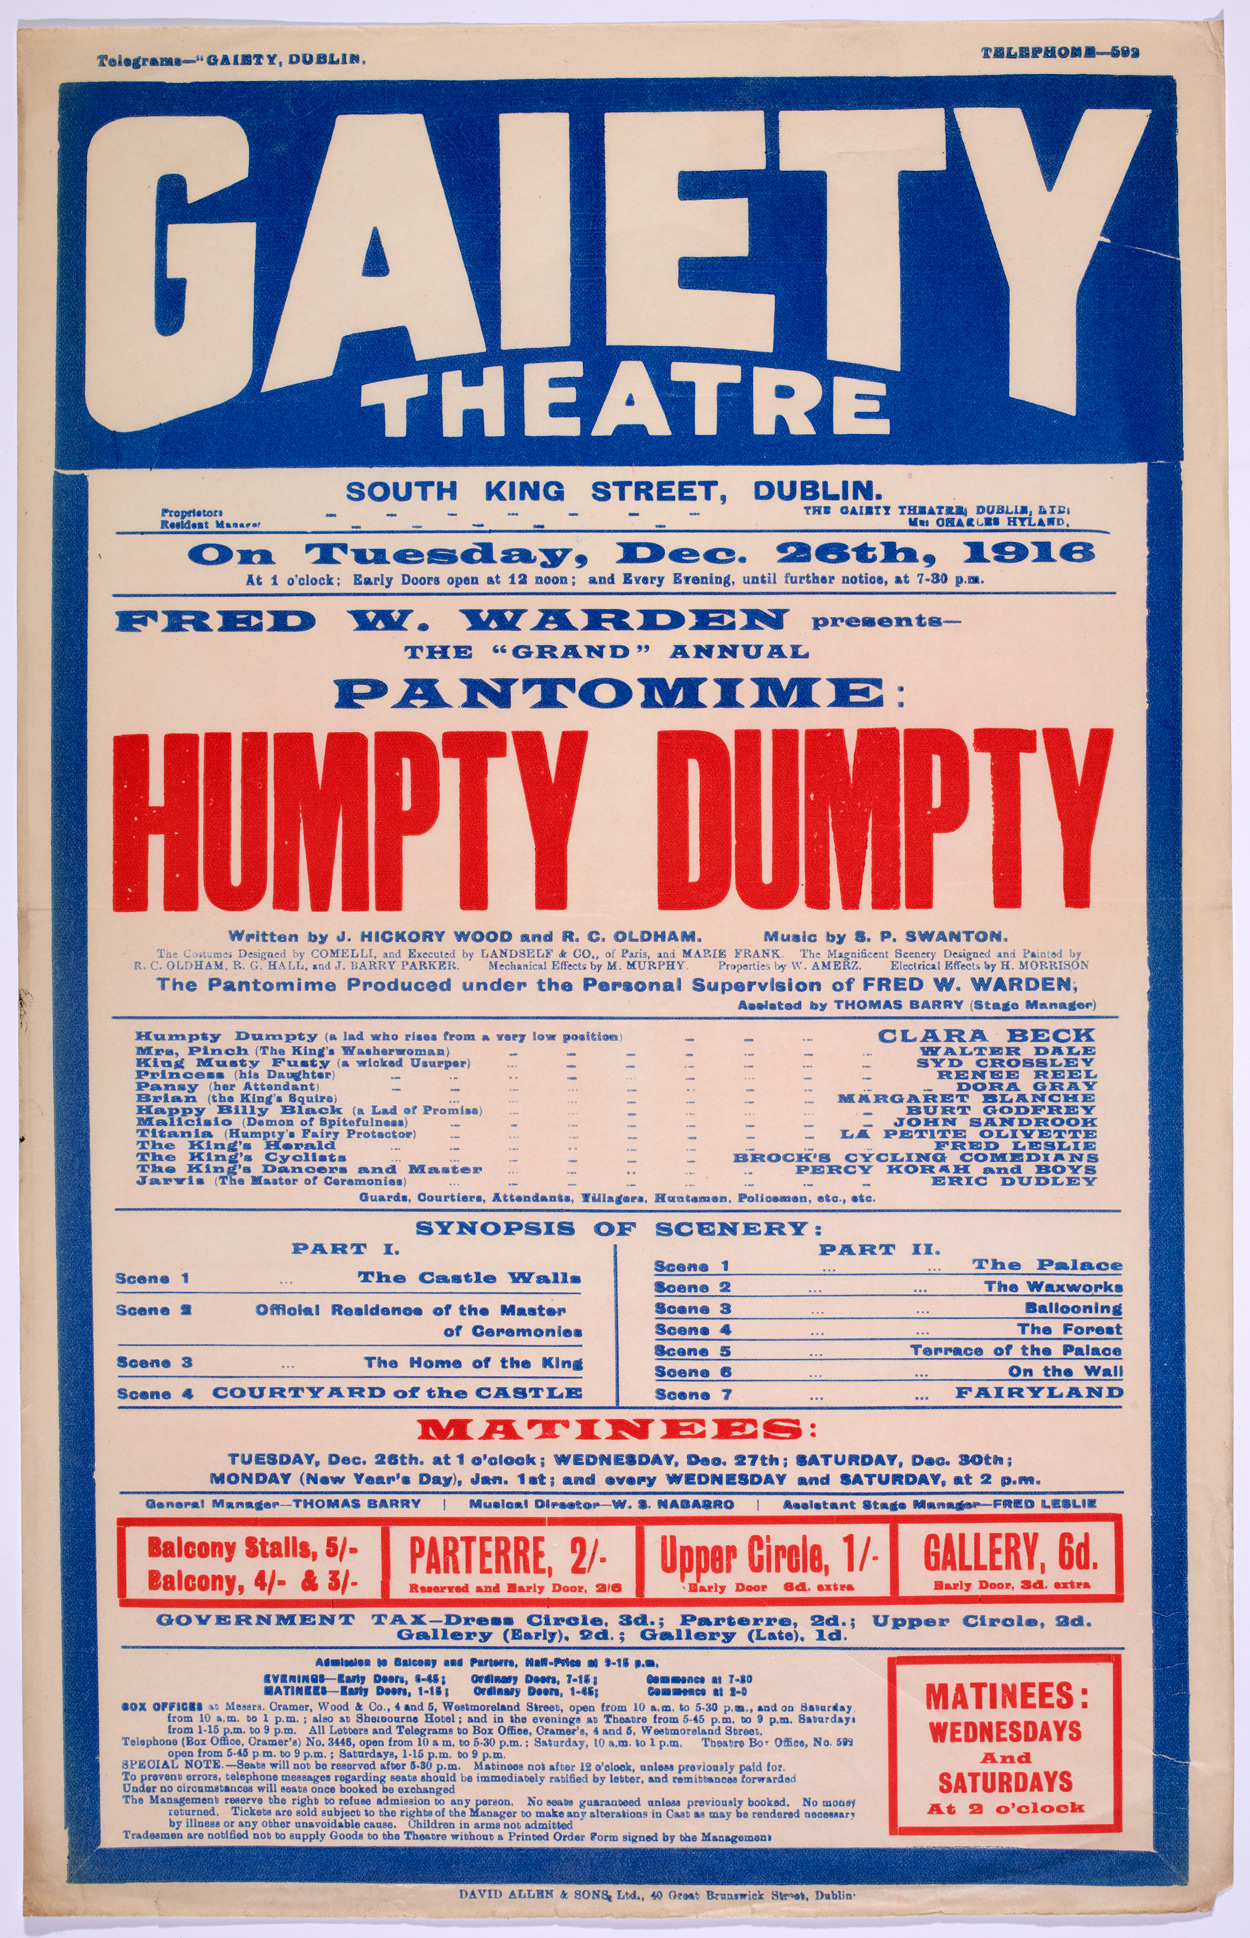 Pastomime - Humpty Dumpty (a lad who rises from a very low position)